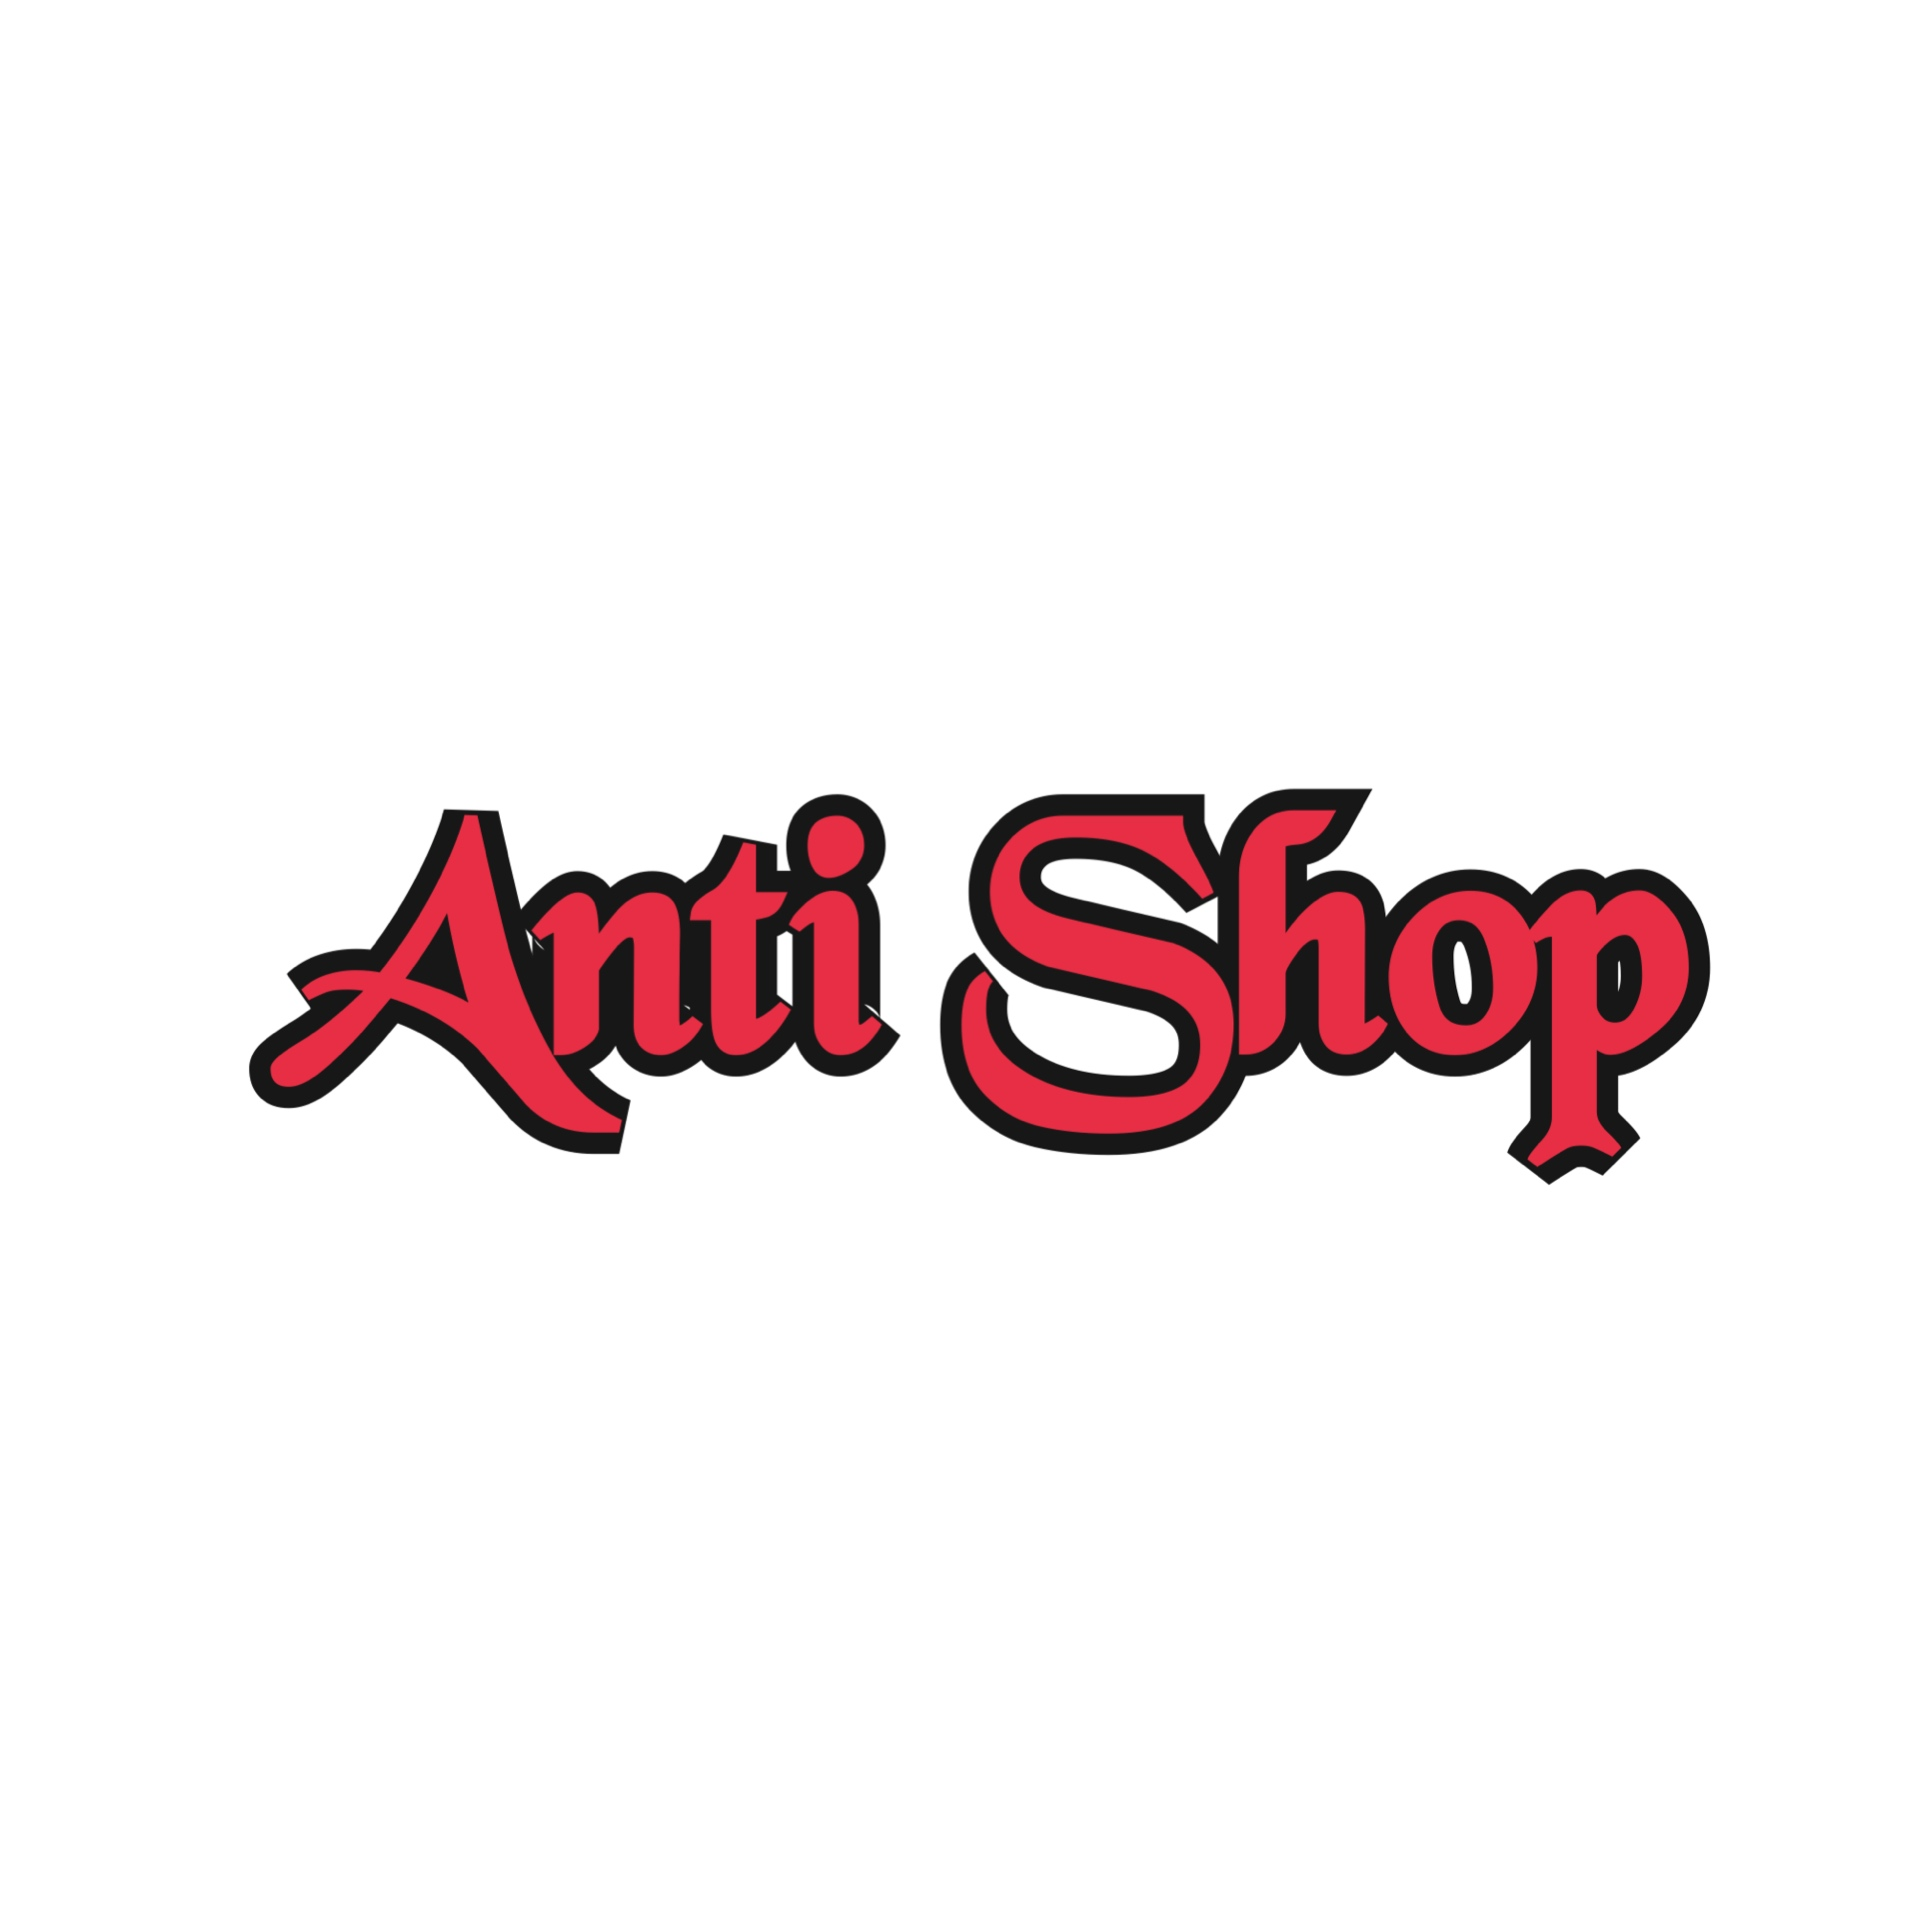 AntiShop